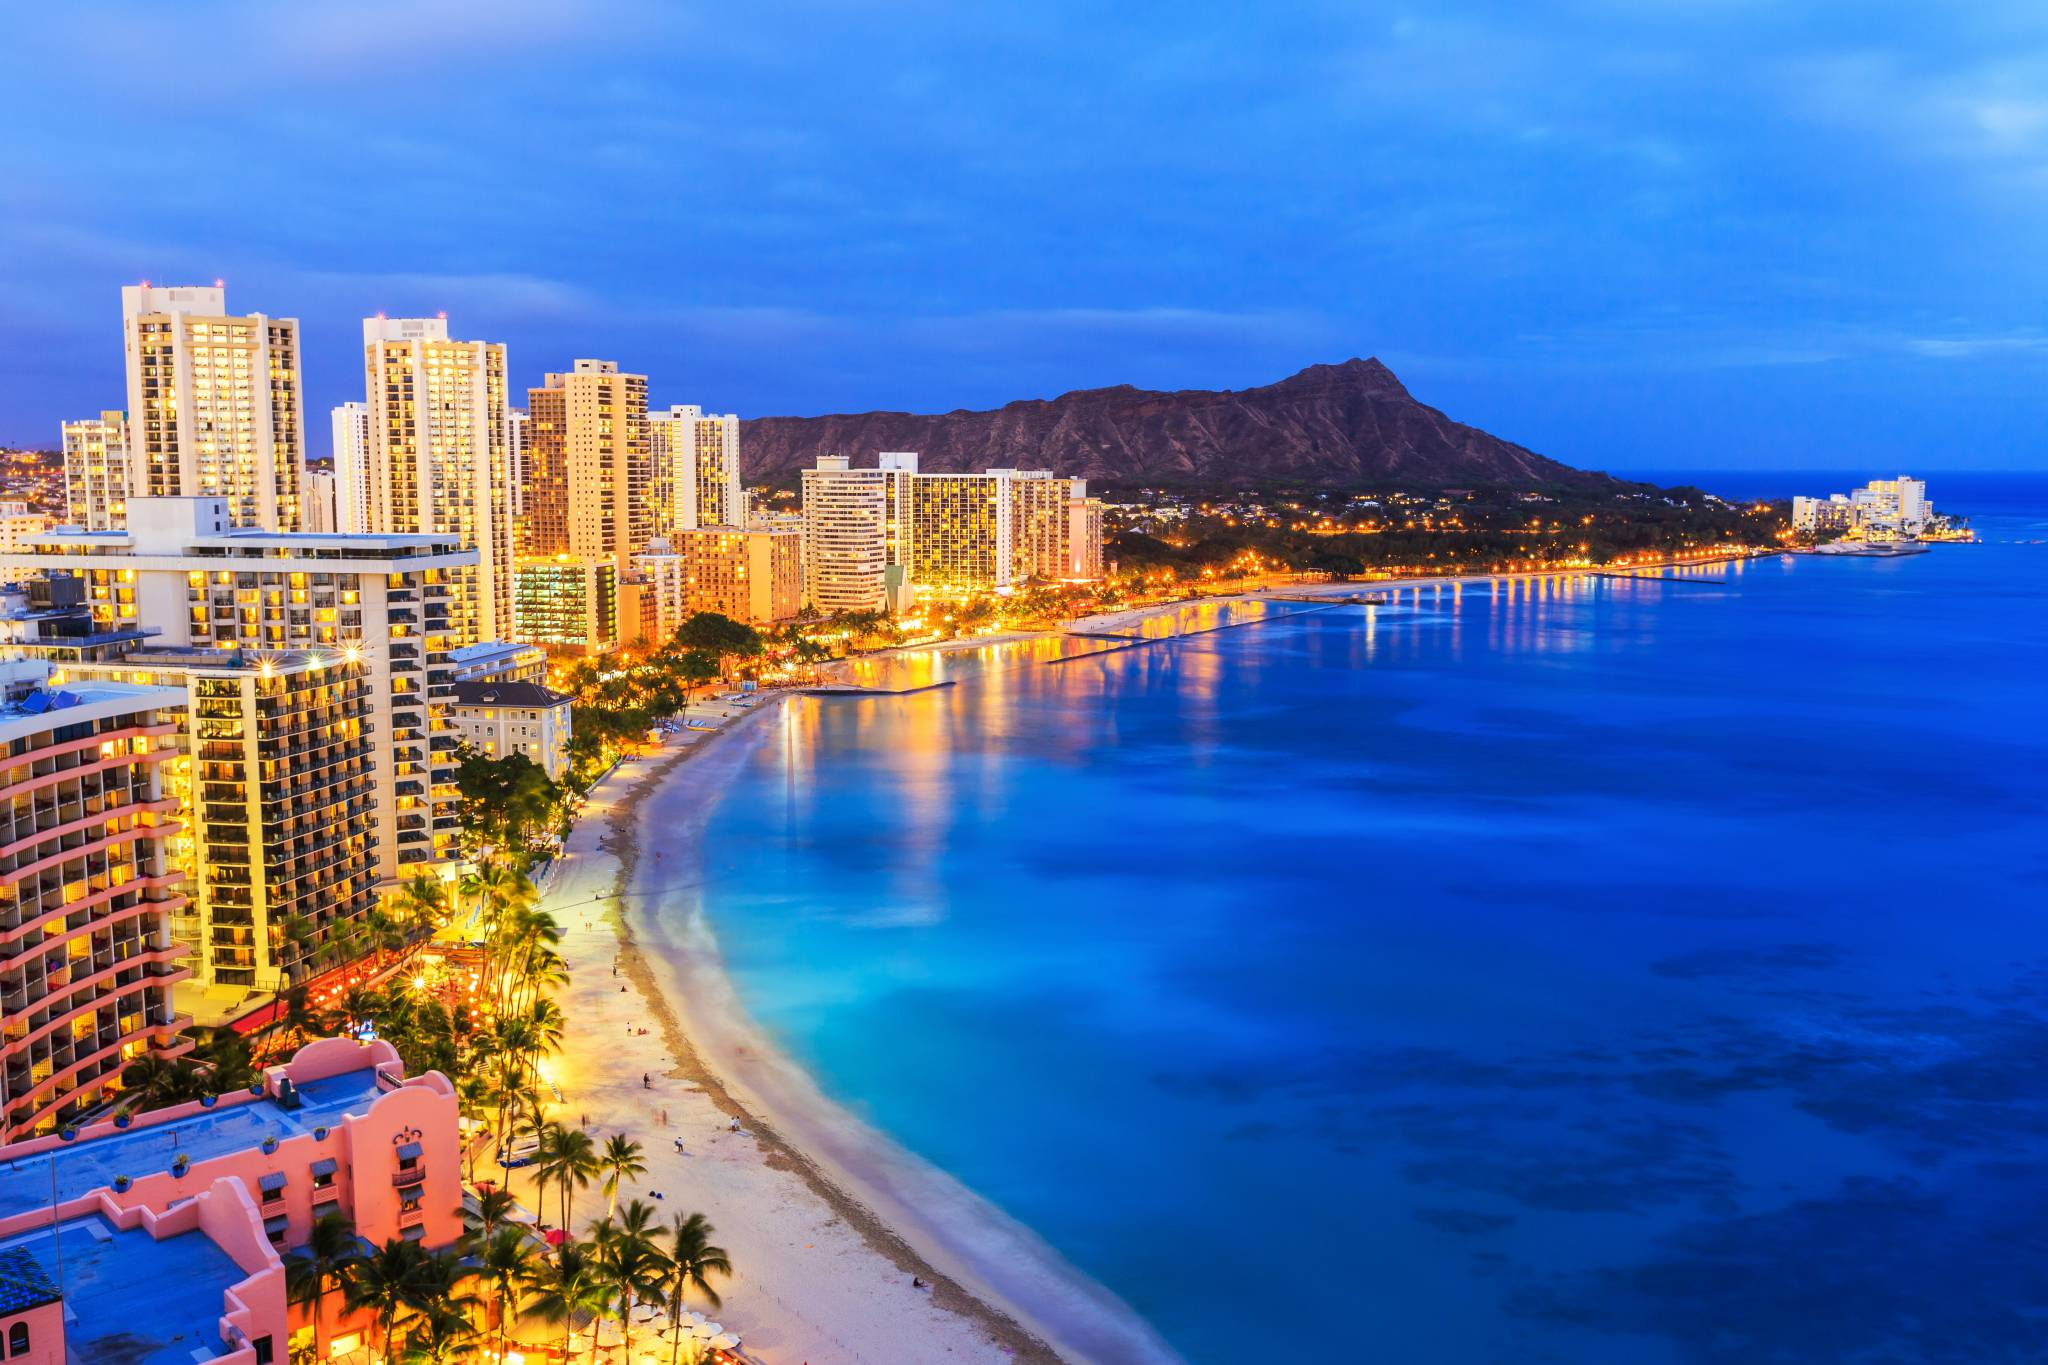 Enjoy Honolulu beaches with our travel guide